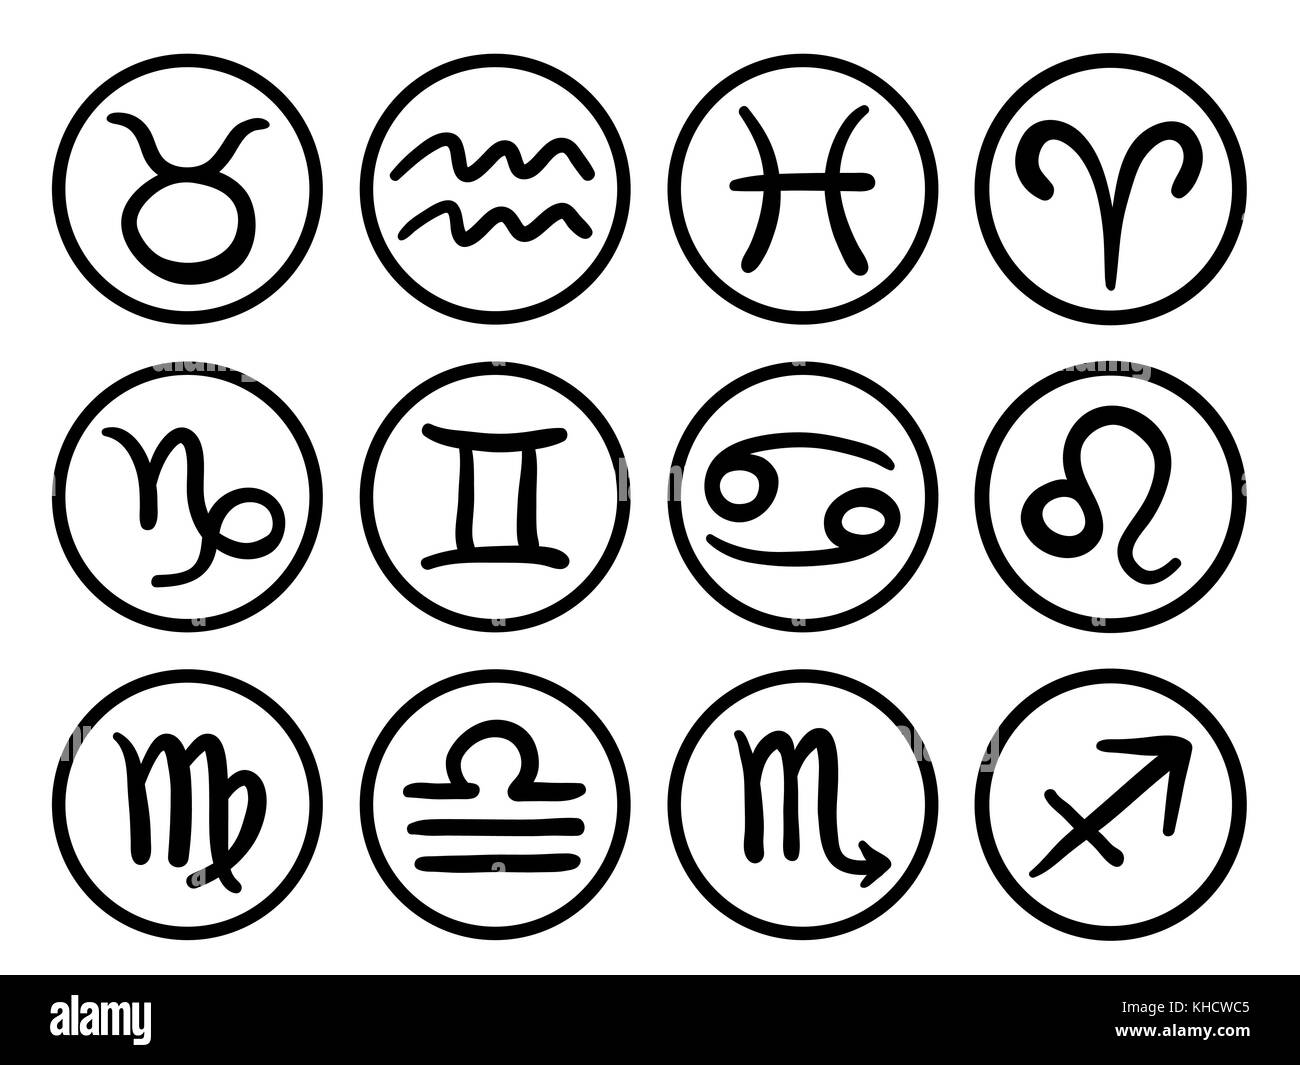 Collection of hand drawn zodiac signs and their names vector collection of hand drawn zodiac signs and their names vector graphics astrology set illustration buycottarizona